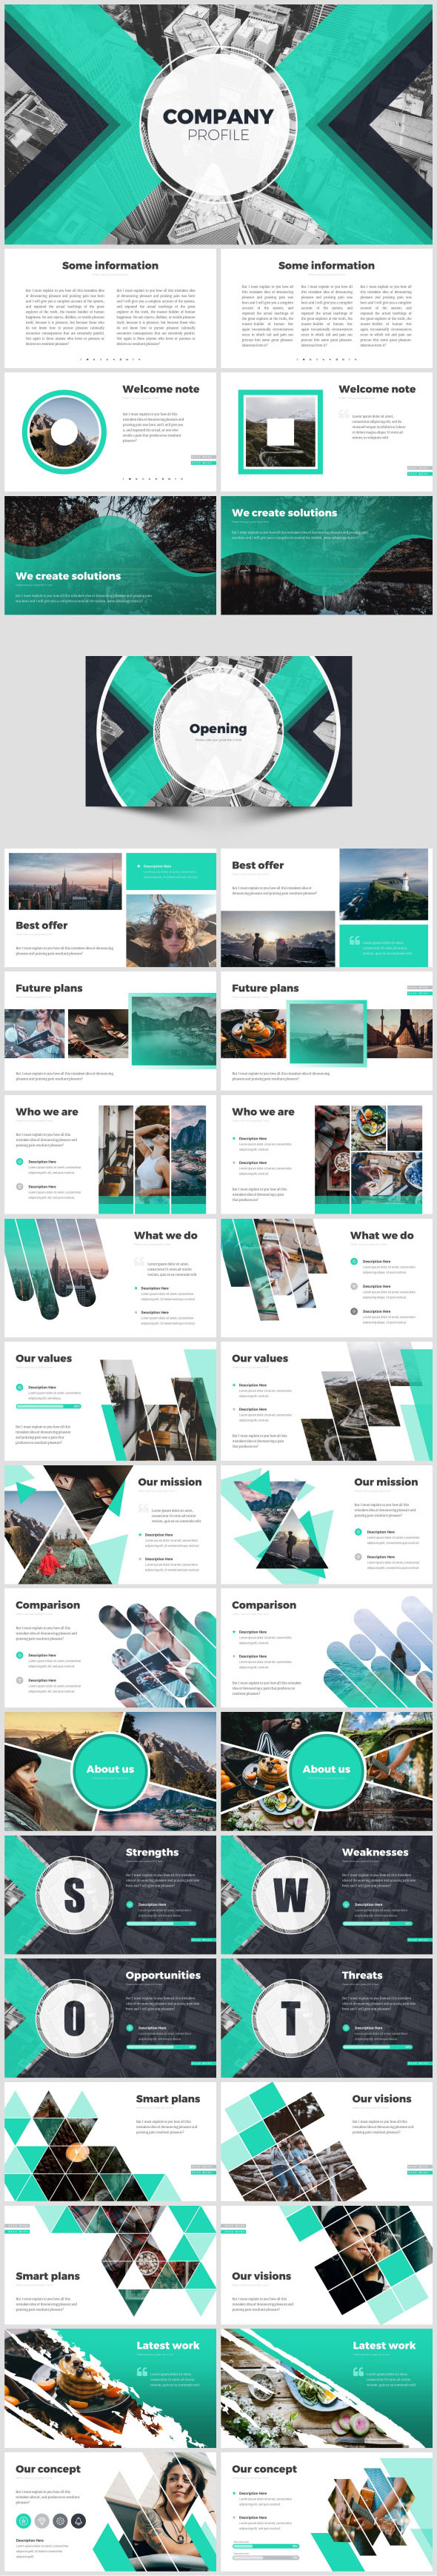 Graphicriver | Pitch Deck Animated Bundle Free Download #1 free download Graphicriver | Pitch Deck Animated Bundle Free Download #1 nulled Graphicriver | Pitch Deck Animated Bundle Free Download #1